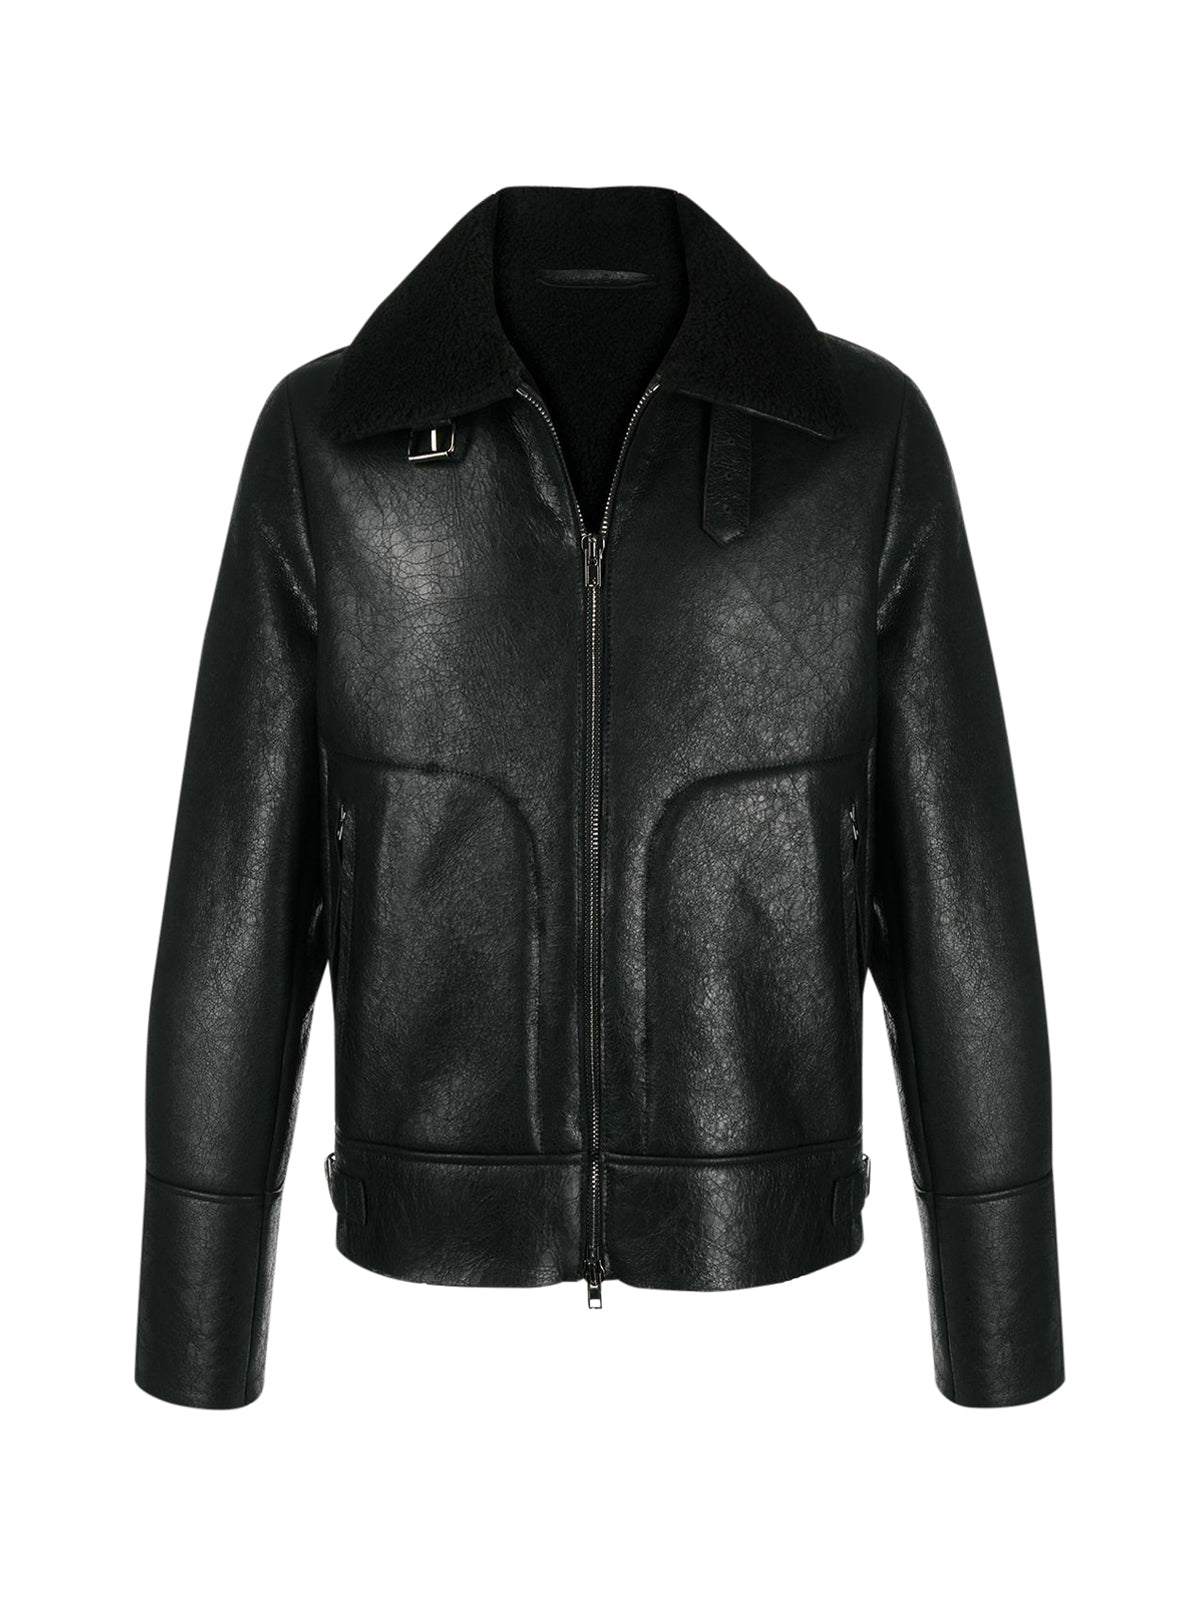 neck-strap aviator jacket